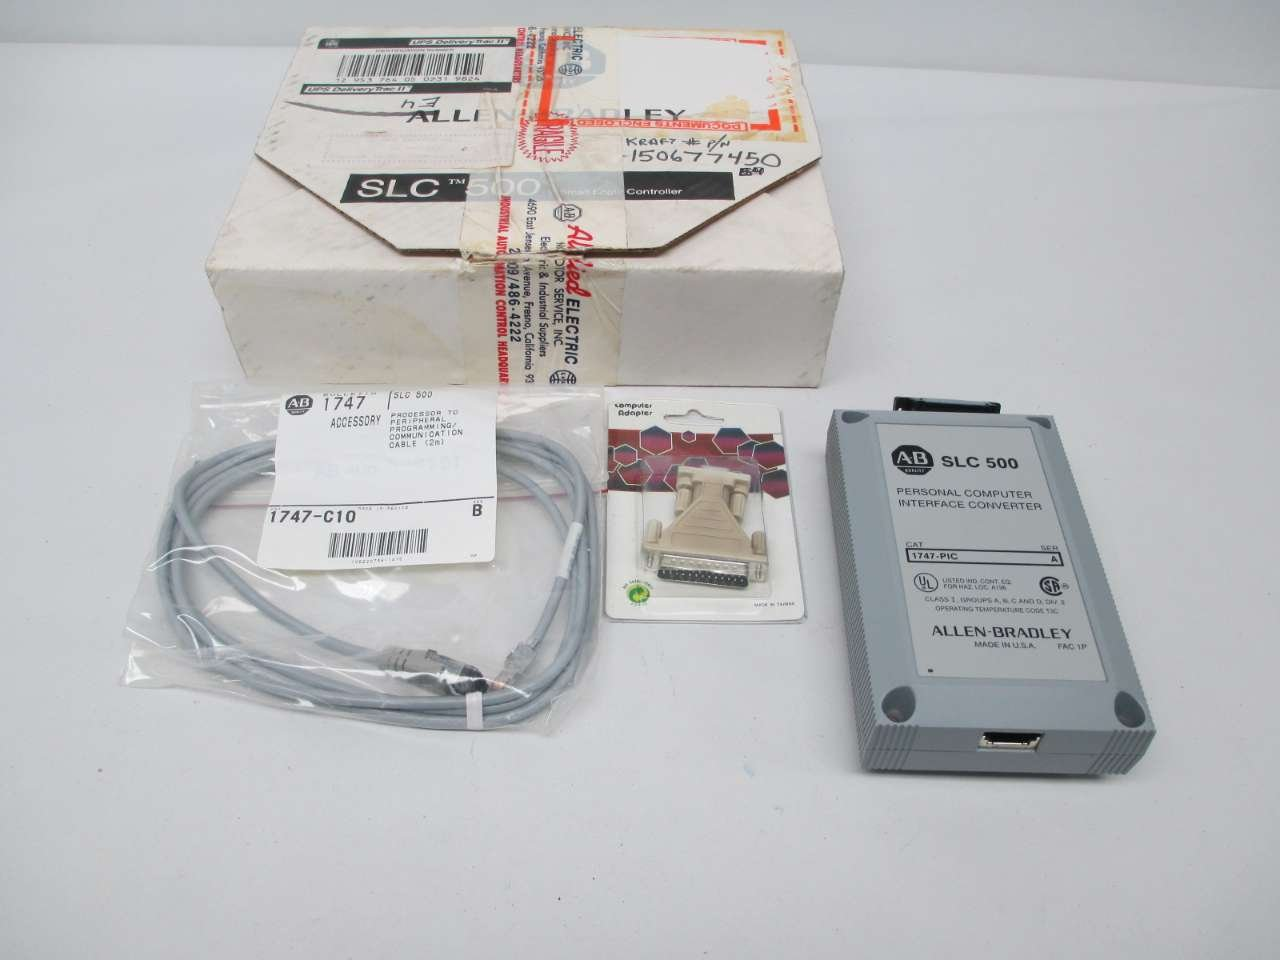 A-B SLC 500 1747-PIC Personal Computer Interface Converter pull from working